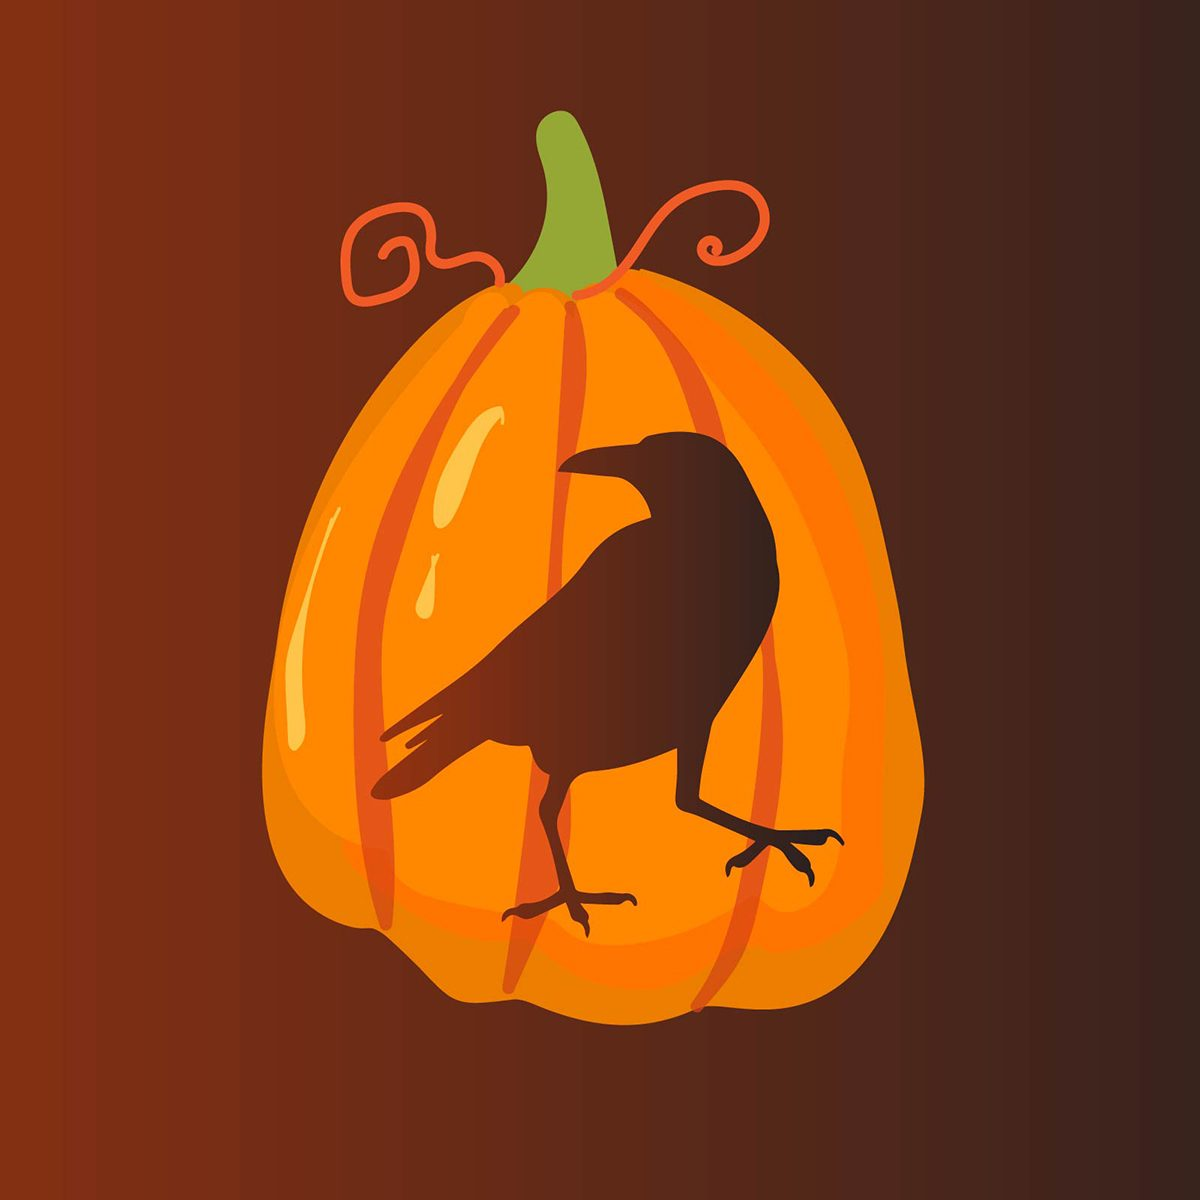 31 Free Pumpkin Carving Stencils To Take Your Jack O Lantern To The Next Level Taste Of Home